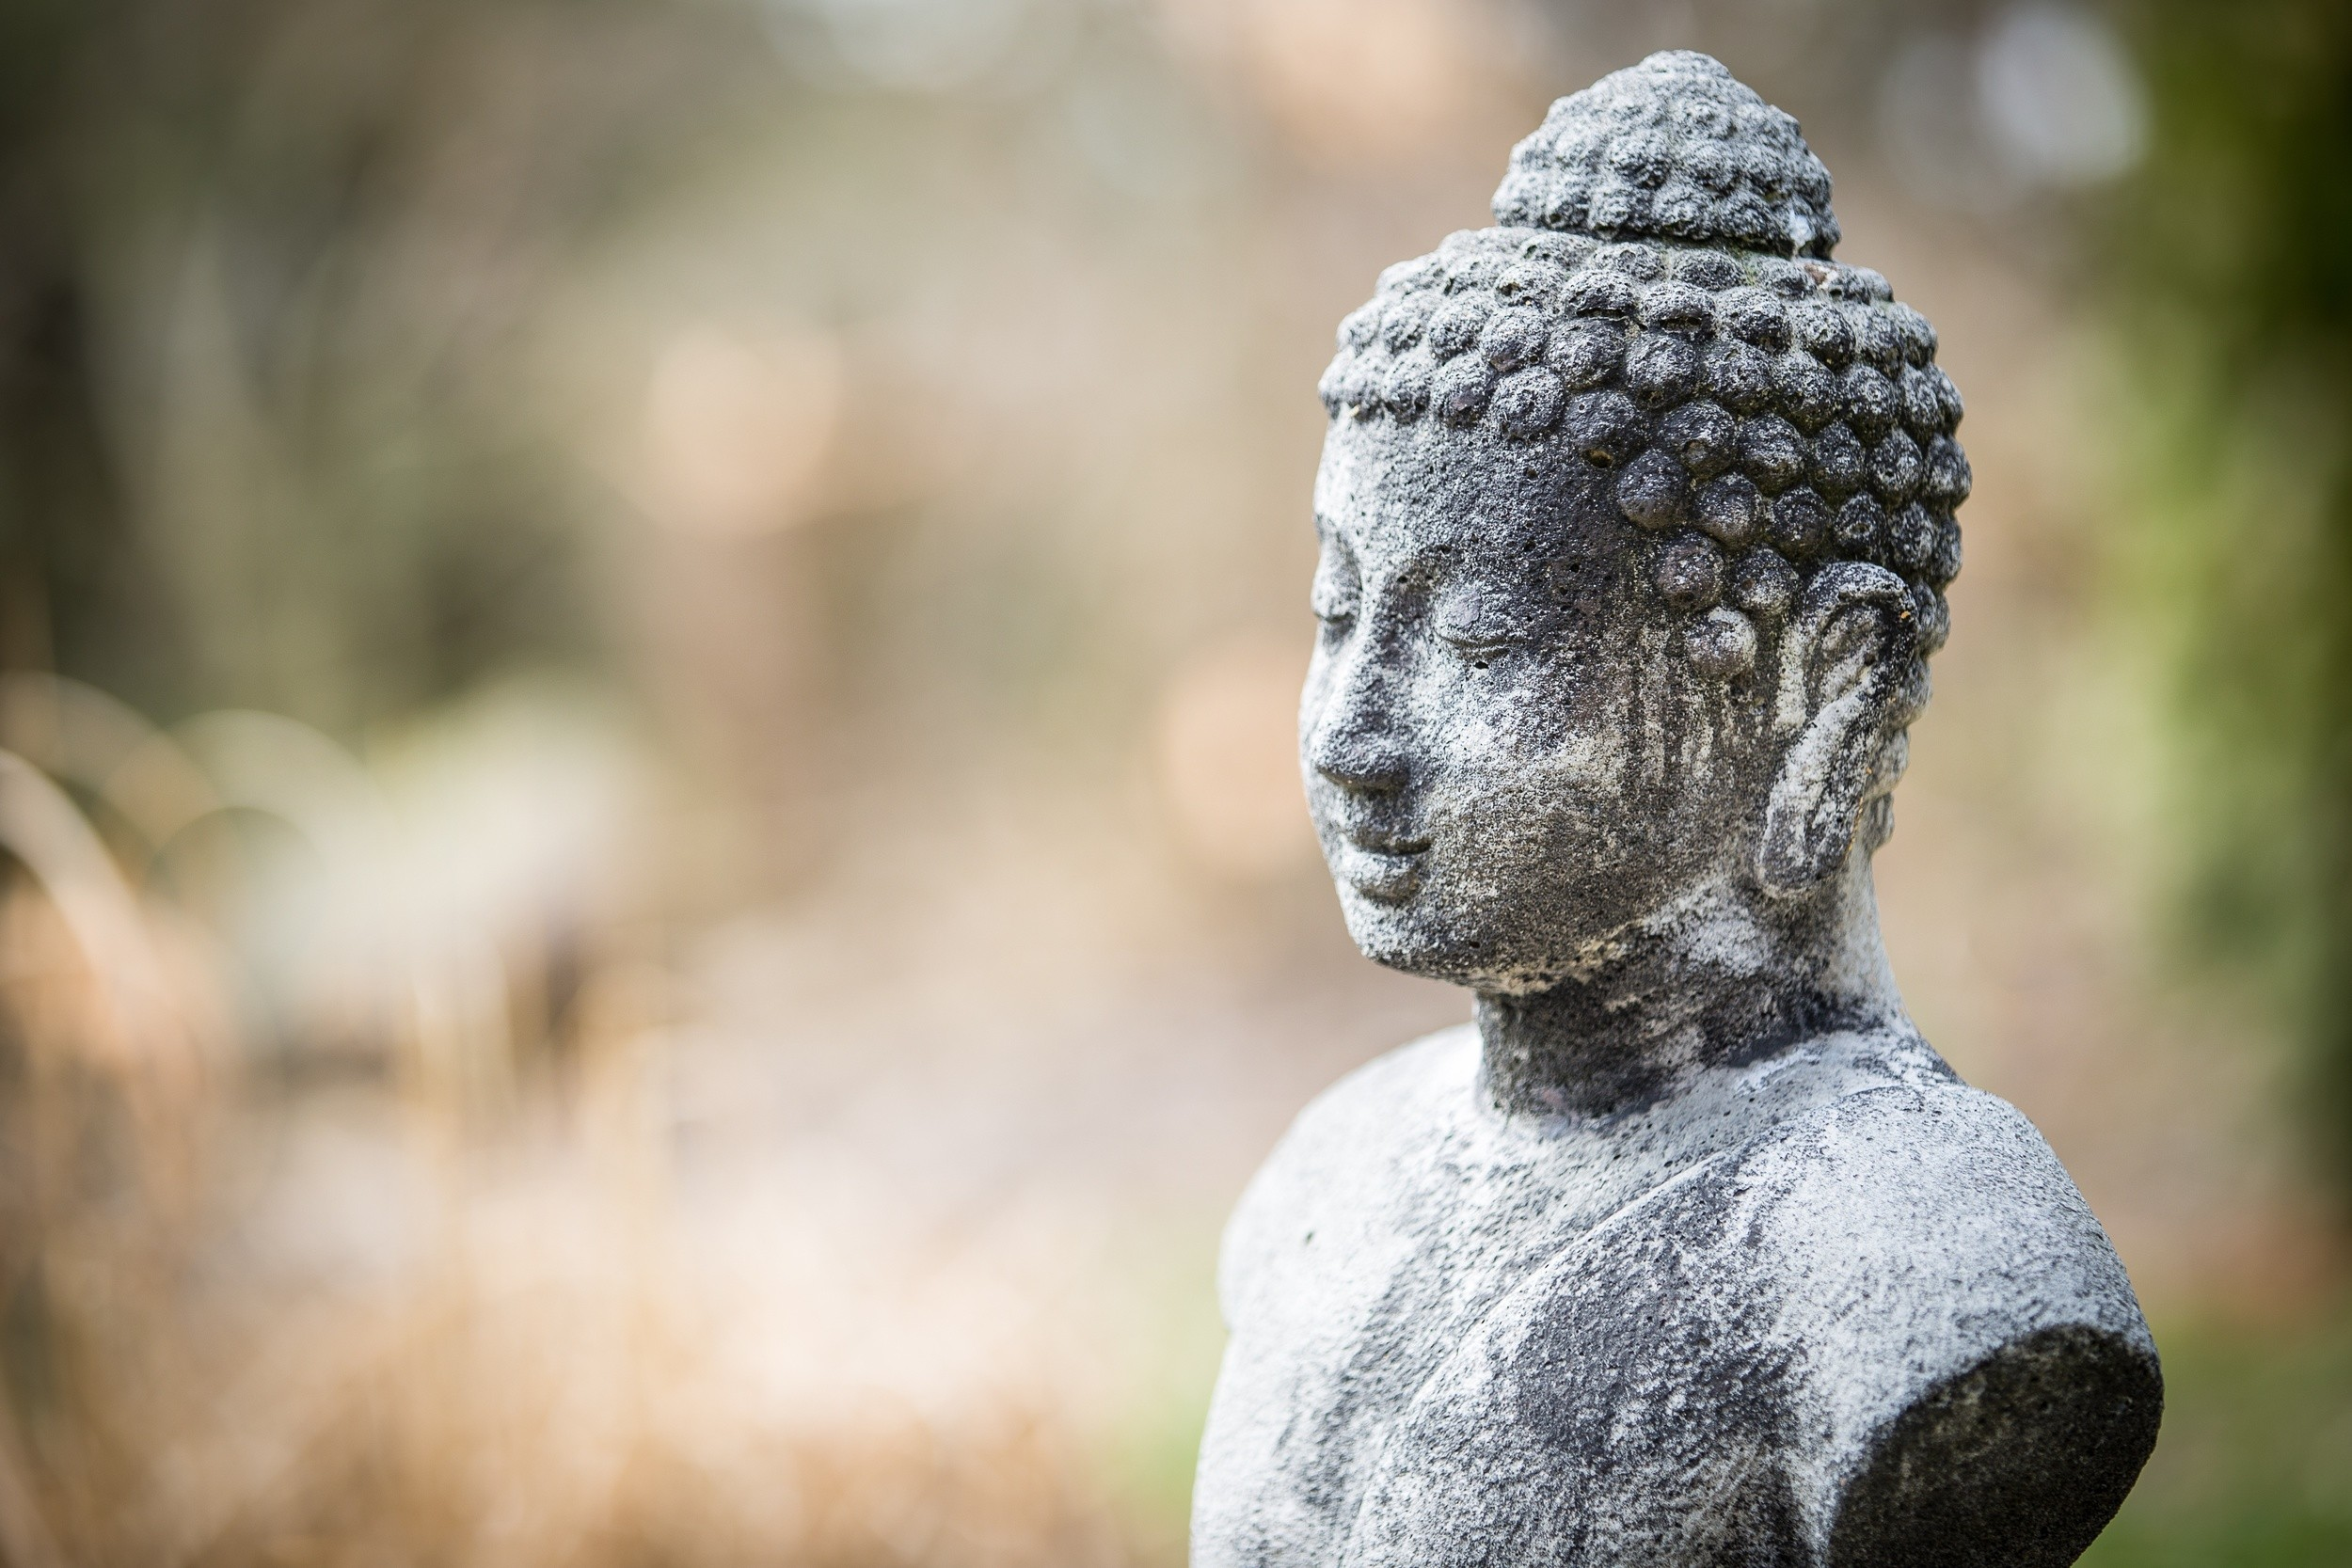 The Secret Buddha Garden